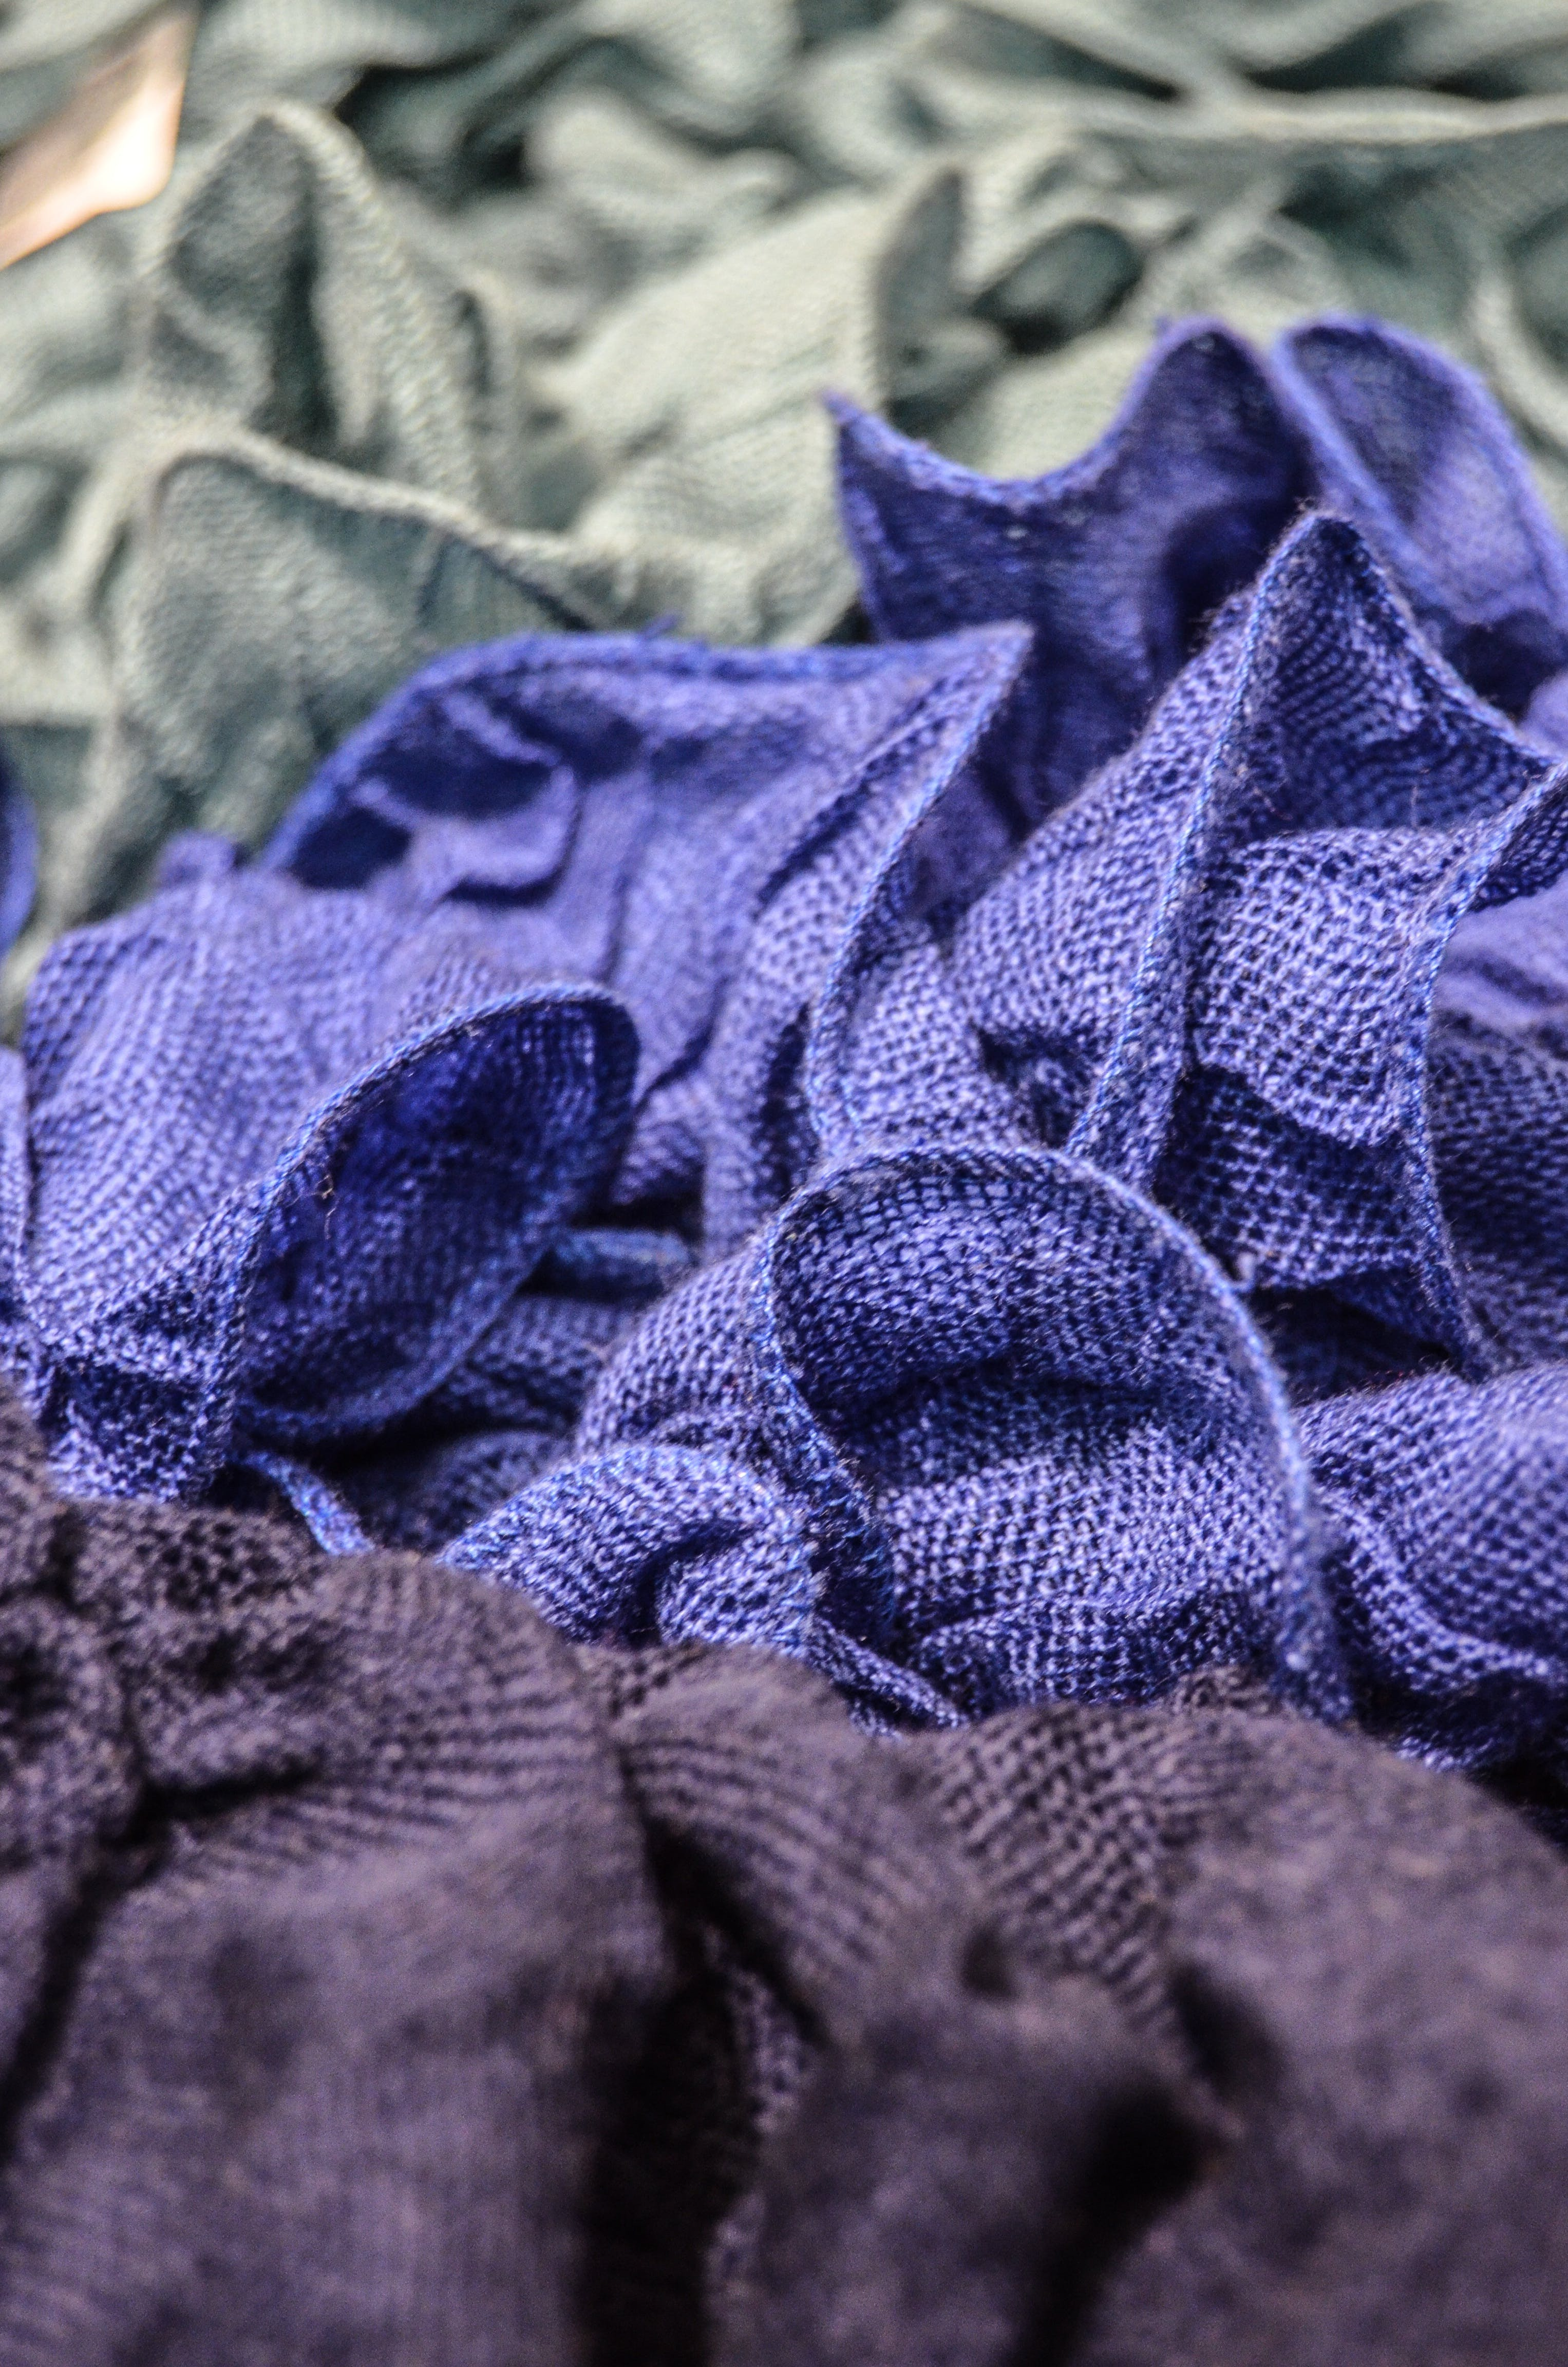 Selective Focus Photo of Purple and Gray Mesh Textile